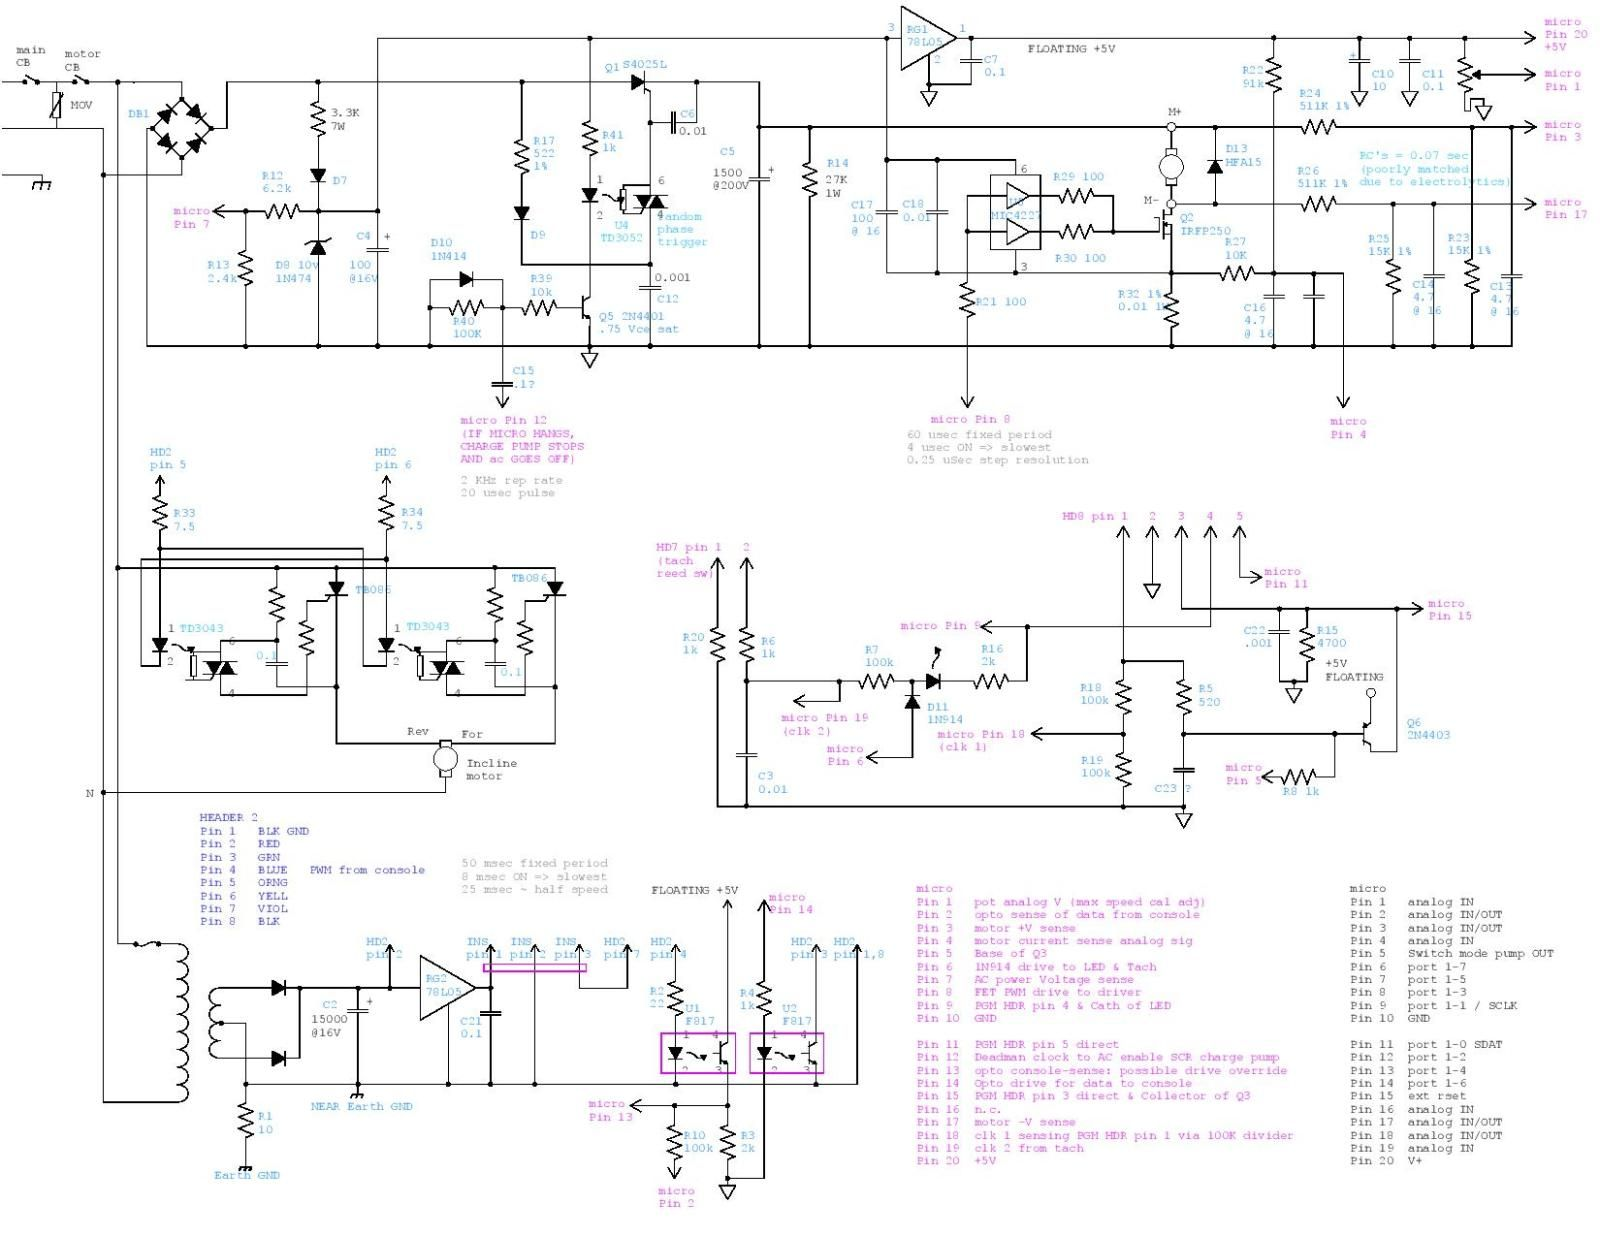 [SCHEMATICS_4CA]  MC2100 Treadmill Motor Control Circuit And Wiring At Diagram | Circuit,  Diagram, Control | Treadmill Wiring Diagram |  | Pinterest